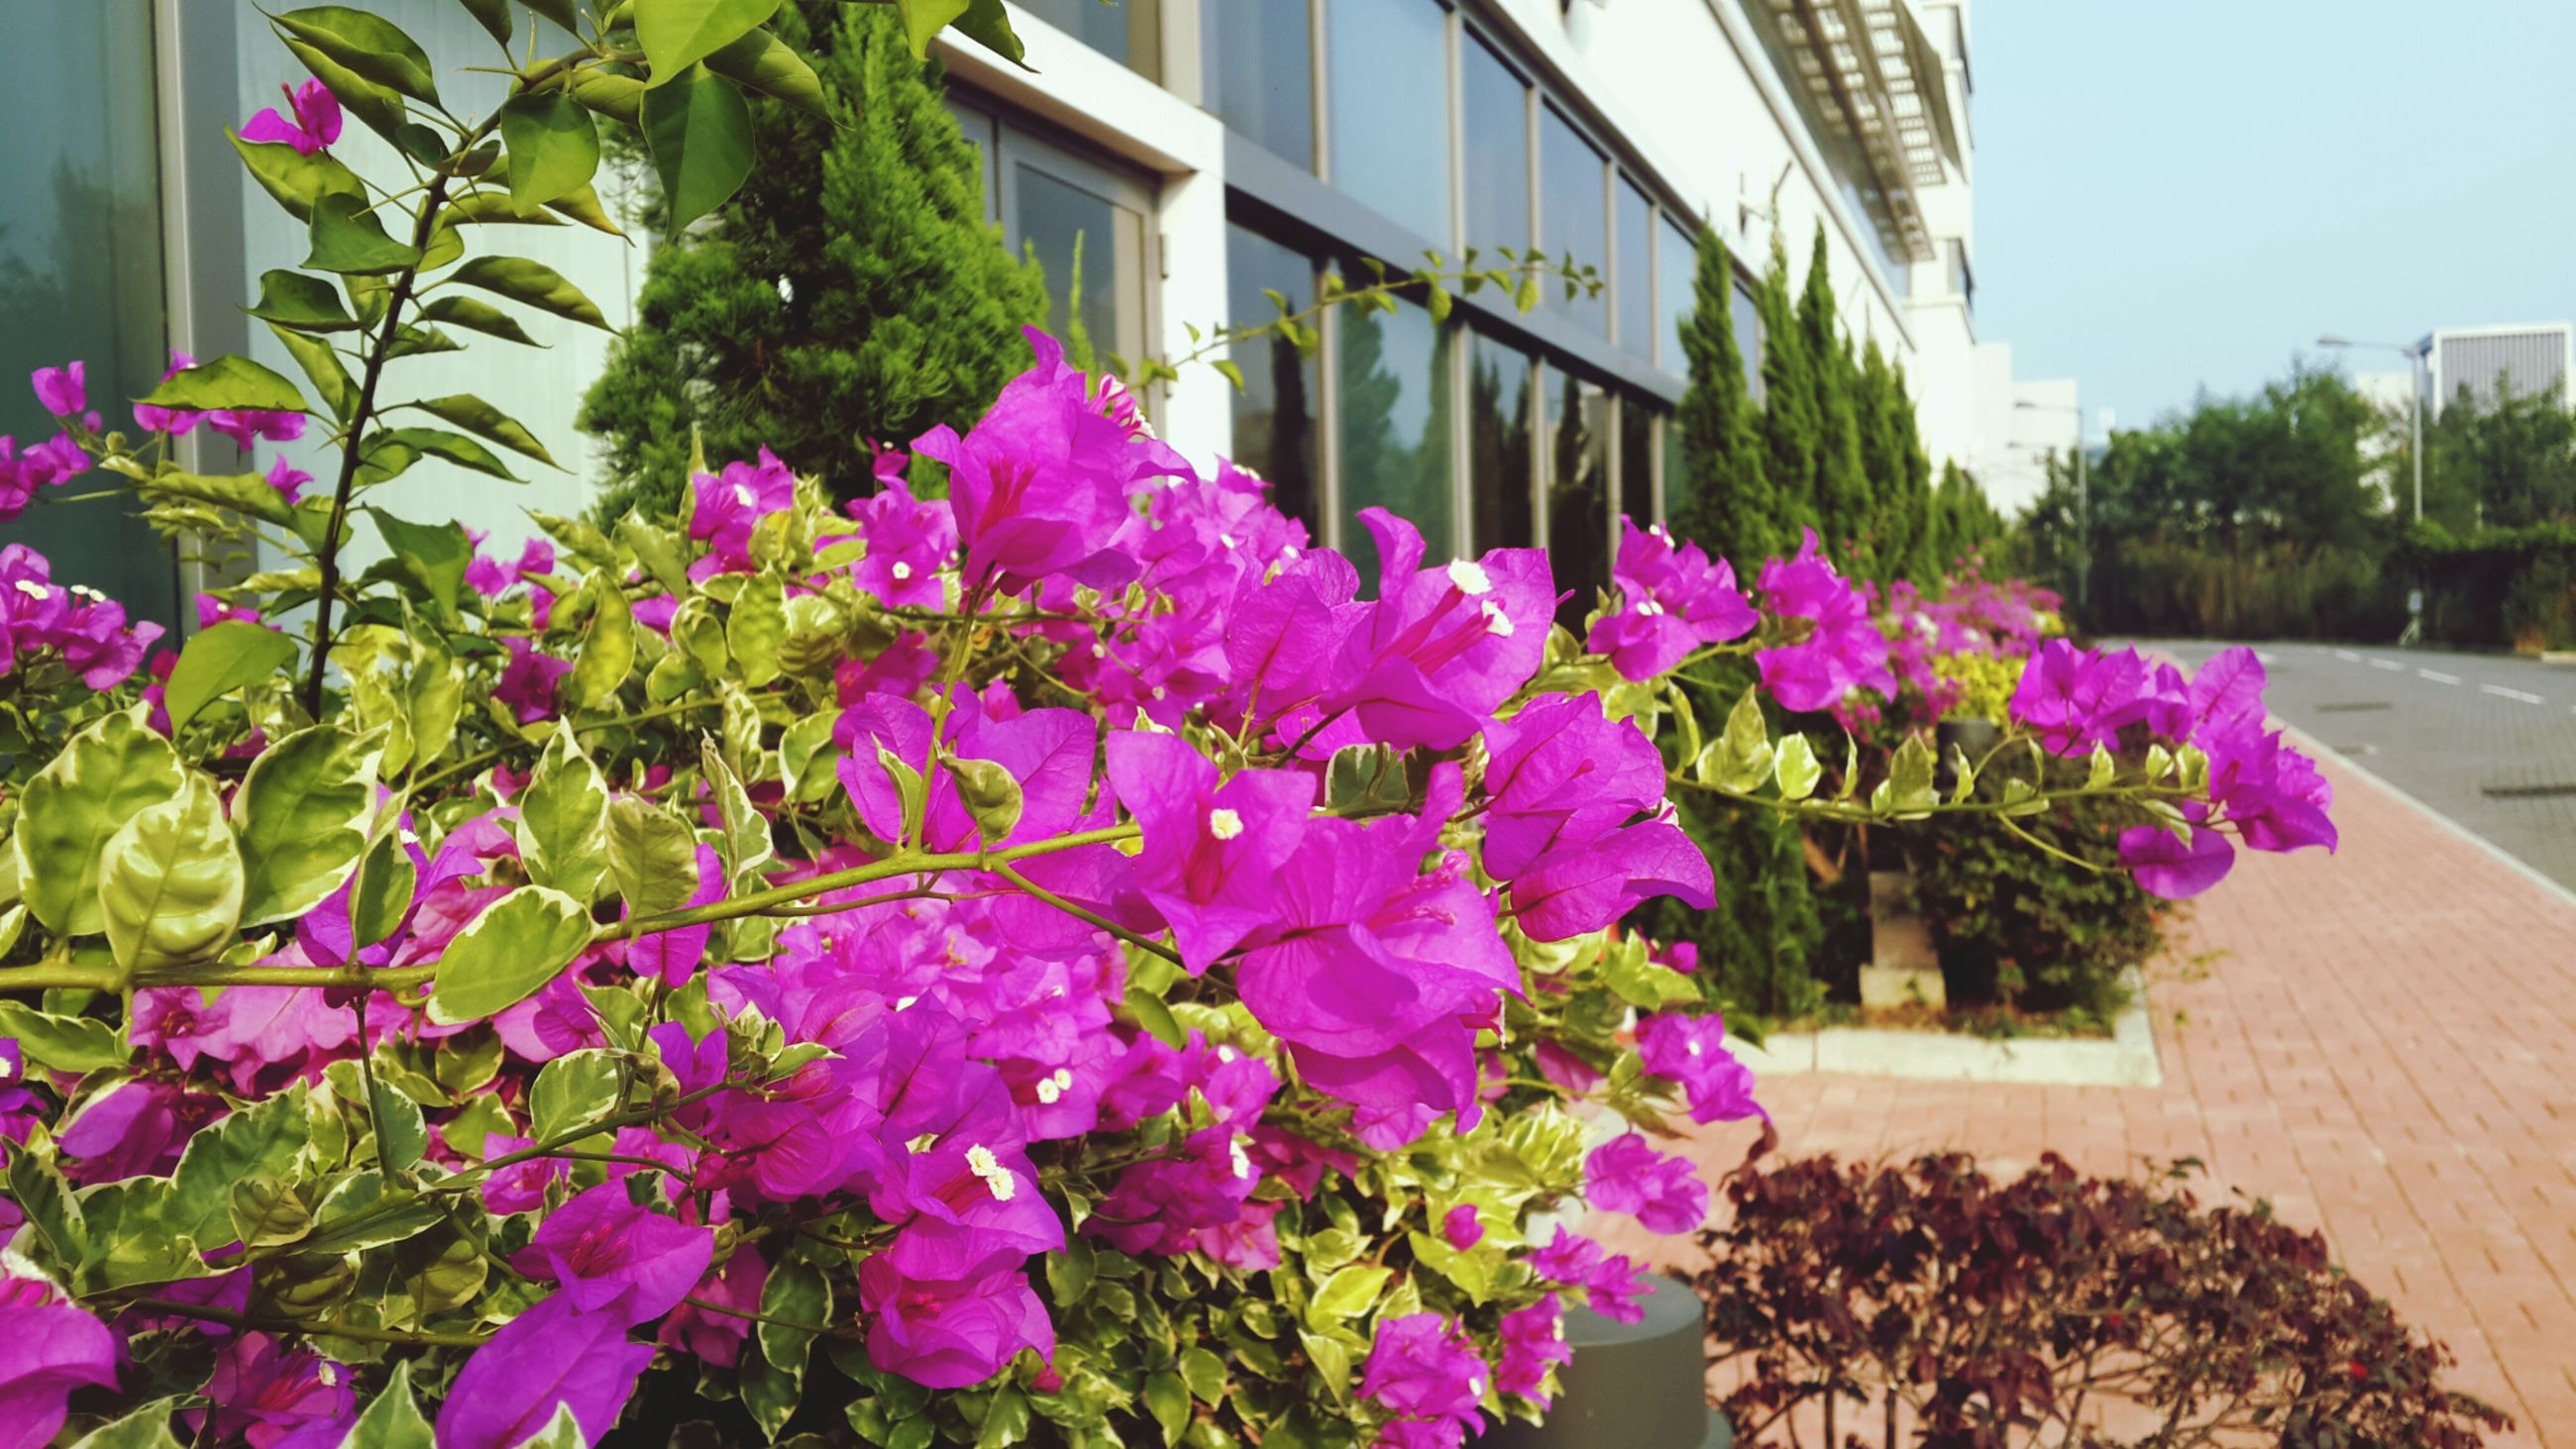 flower, freshness, growth, fragility, plant, building exterior, built structure, purple, architecture, blooming, beauty in nature, petal, nature, in bloom, pink color, leaf, flower head, potted plant, blossom, day